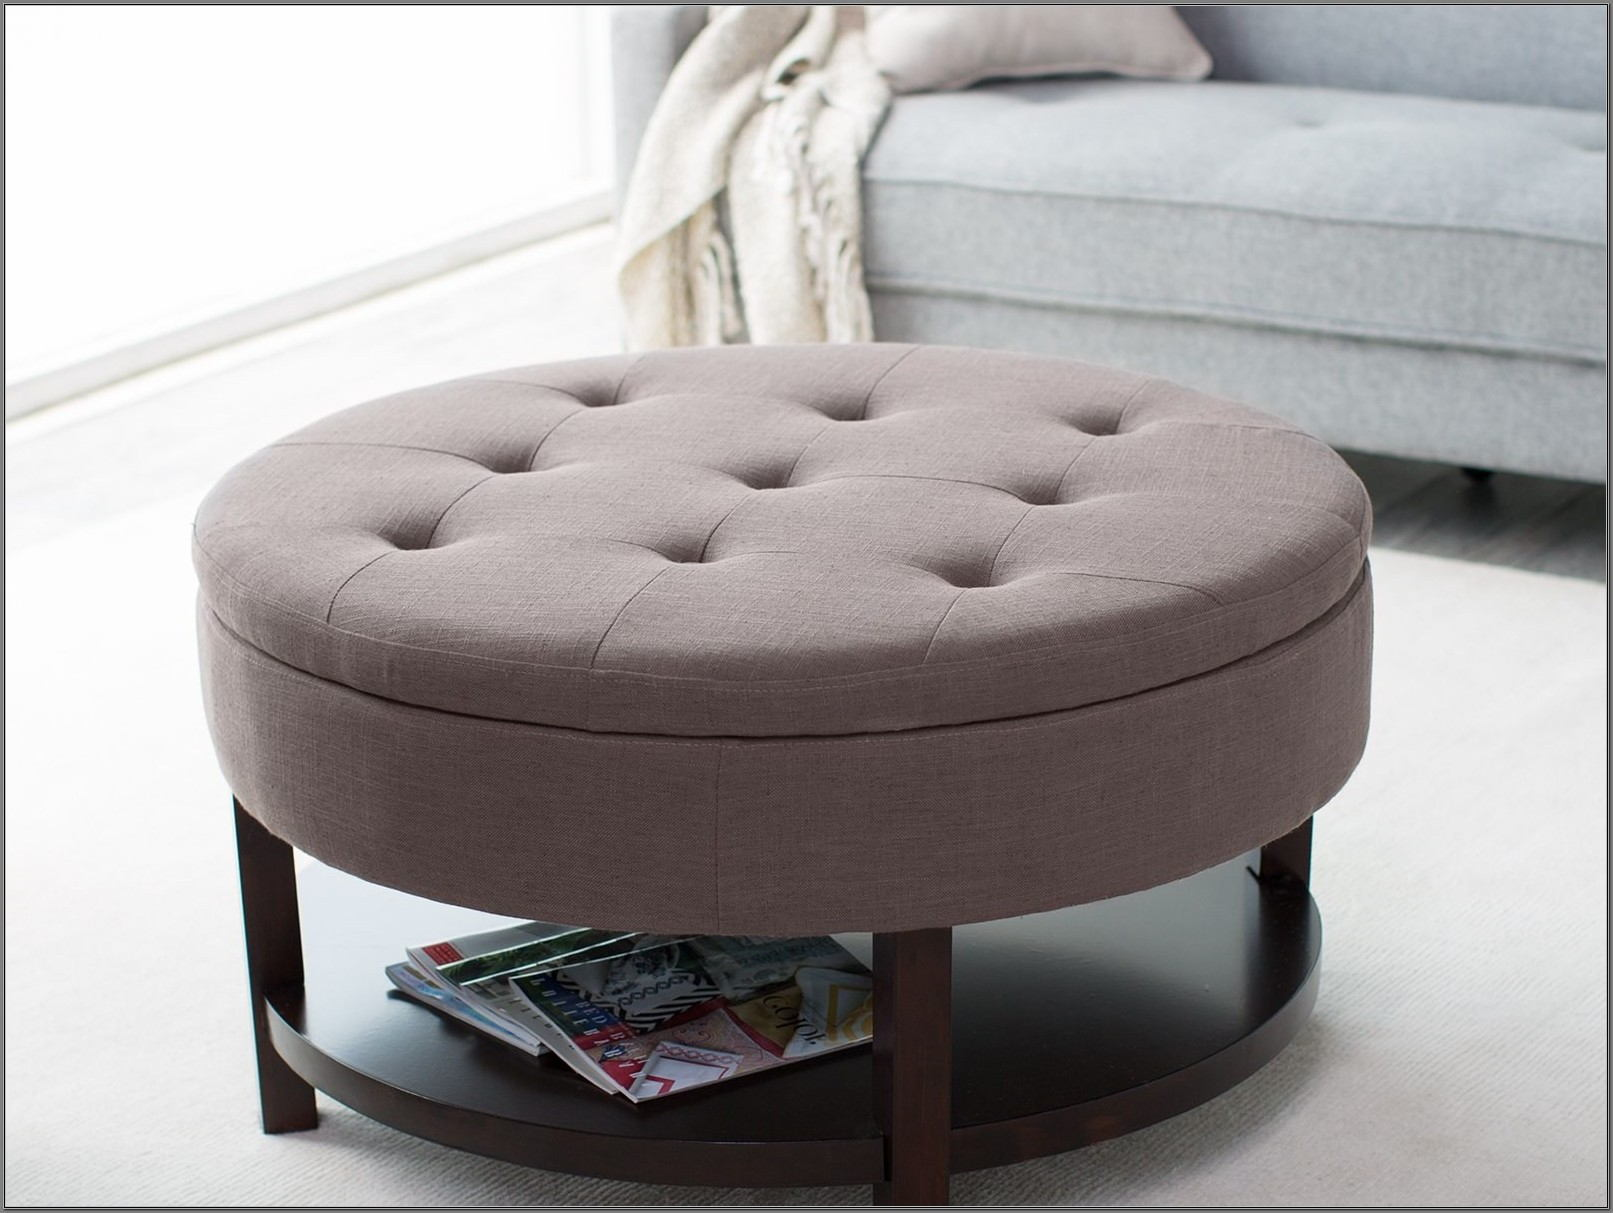 Diy Round Ottoman Coffee Table